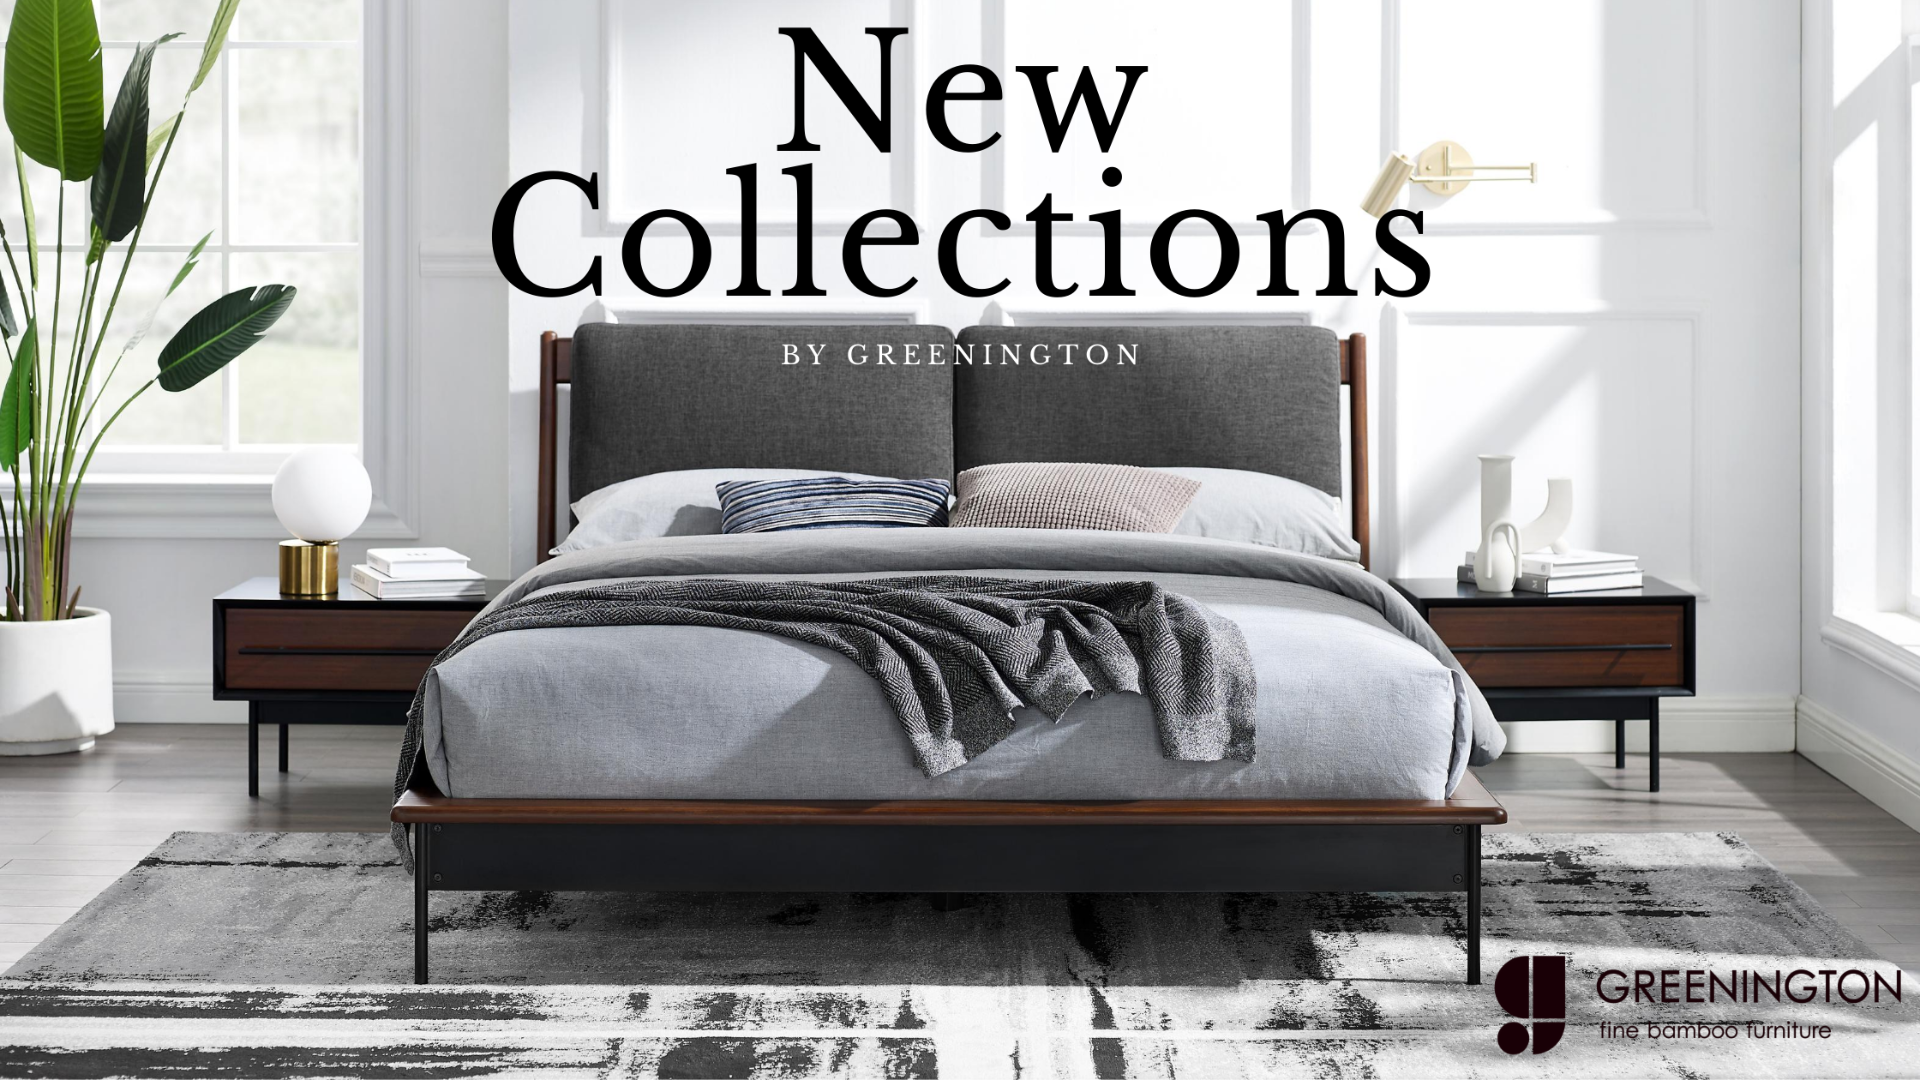 New Greenington Collections